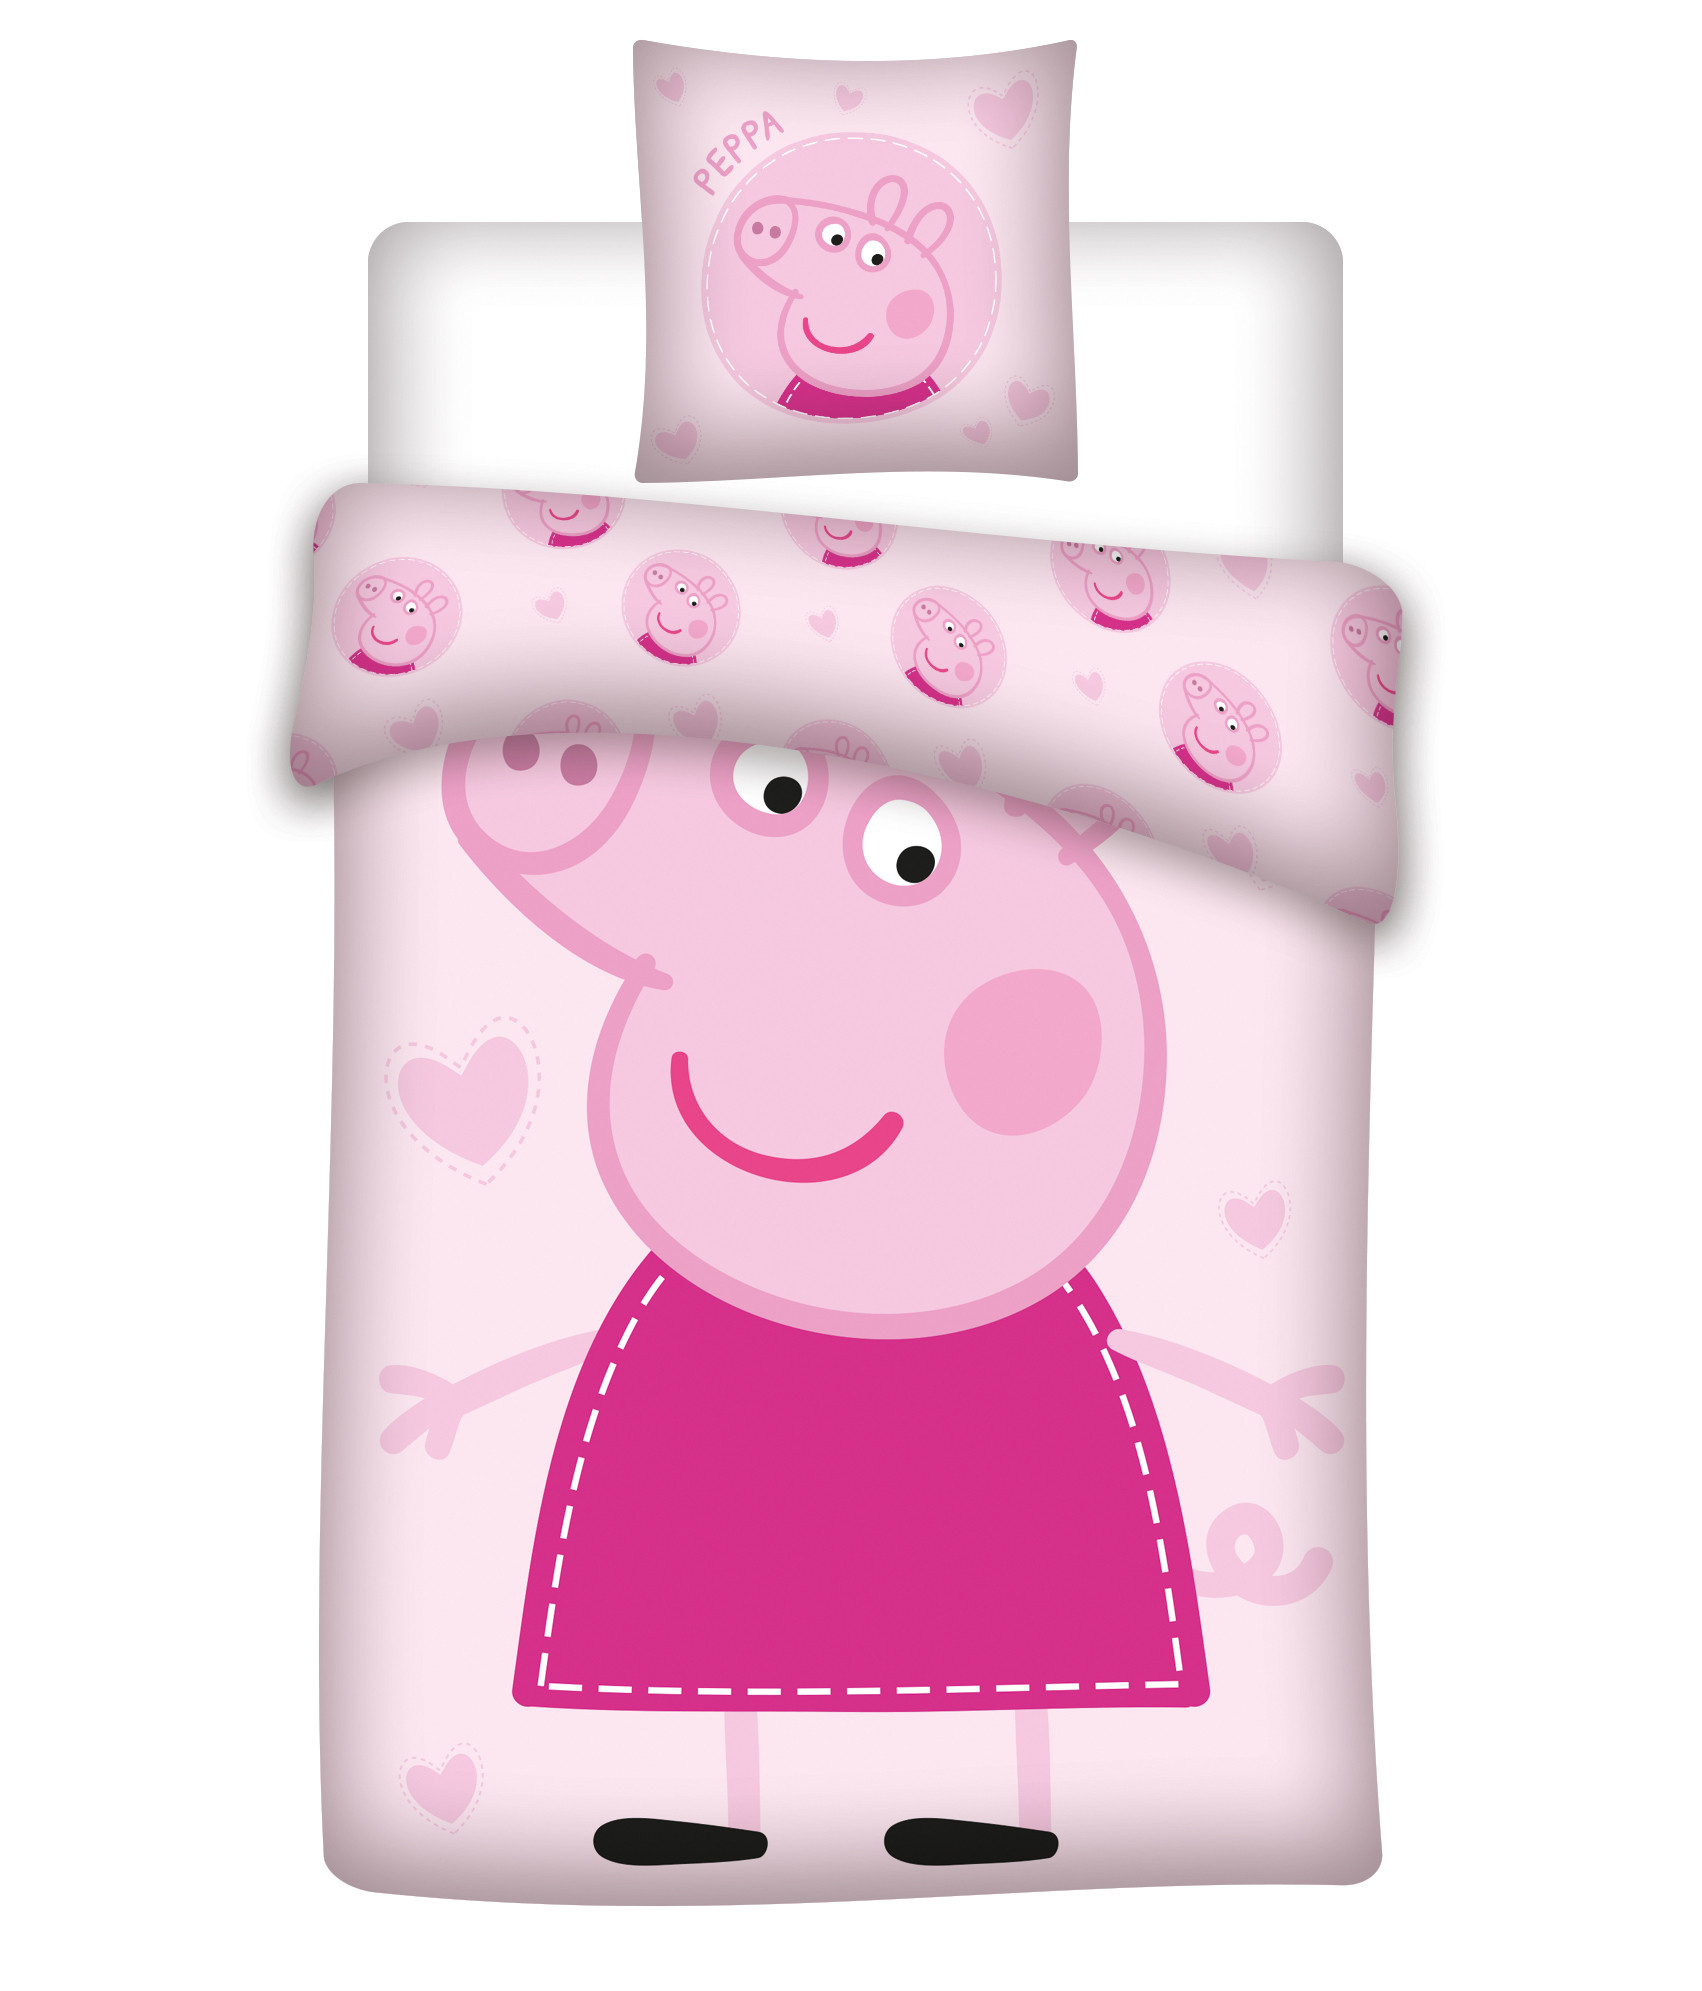 Bed Linen - Adult Size 140 x 200 cm - Peppa Pig (1000391)